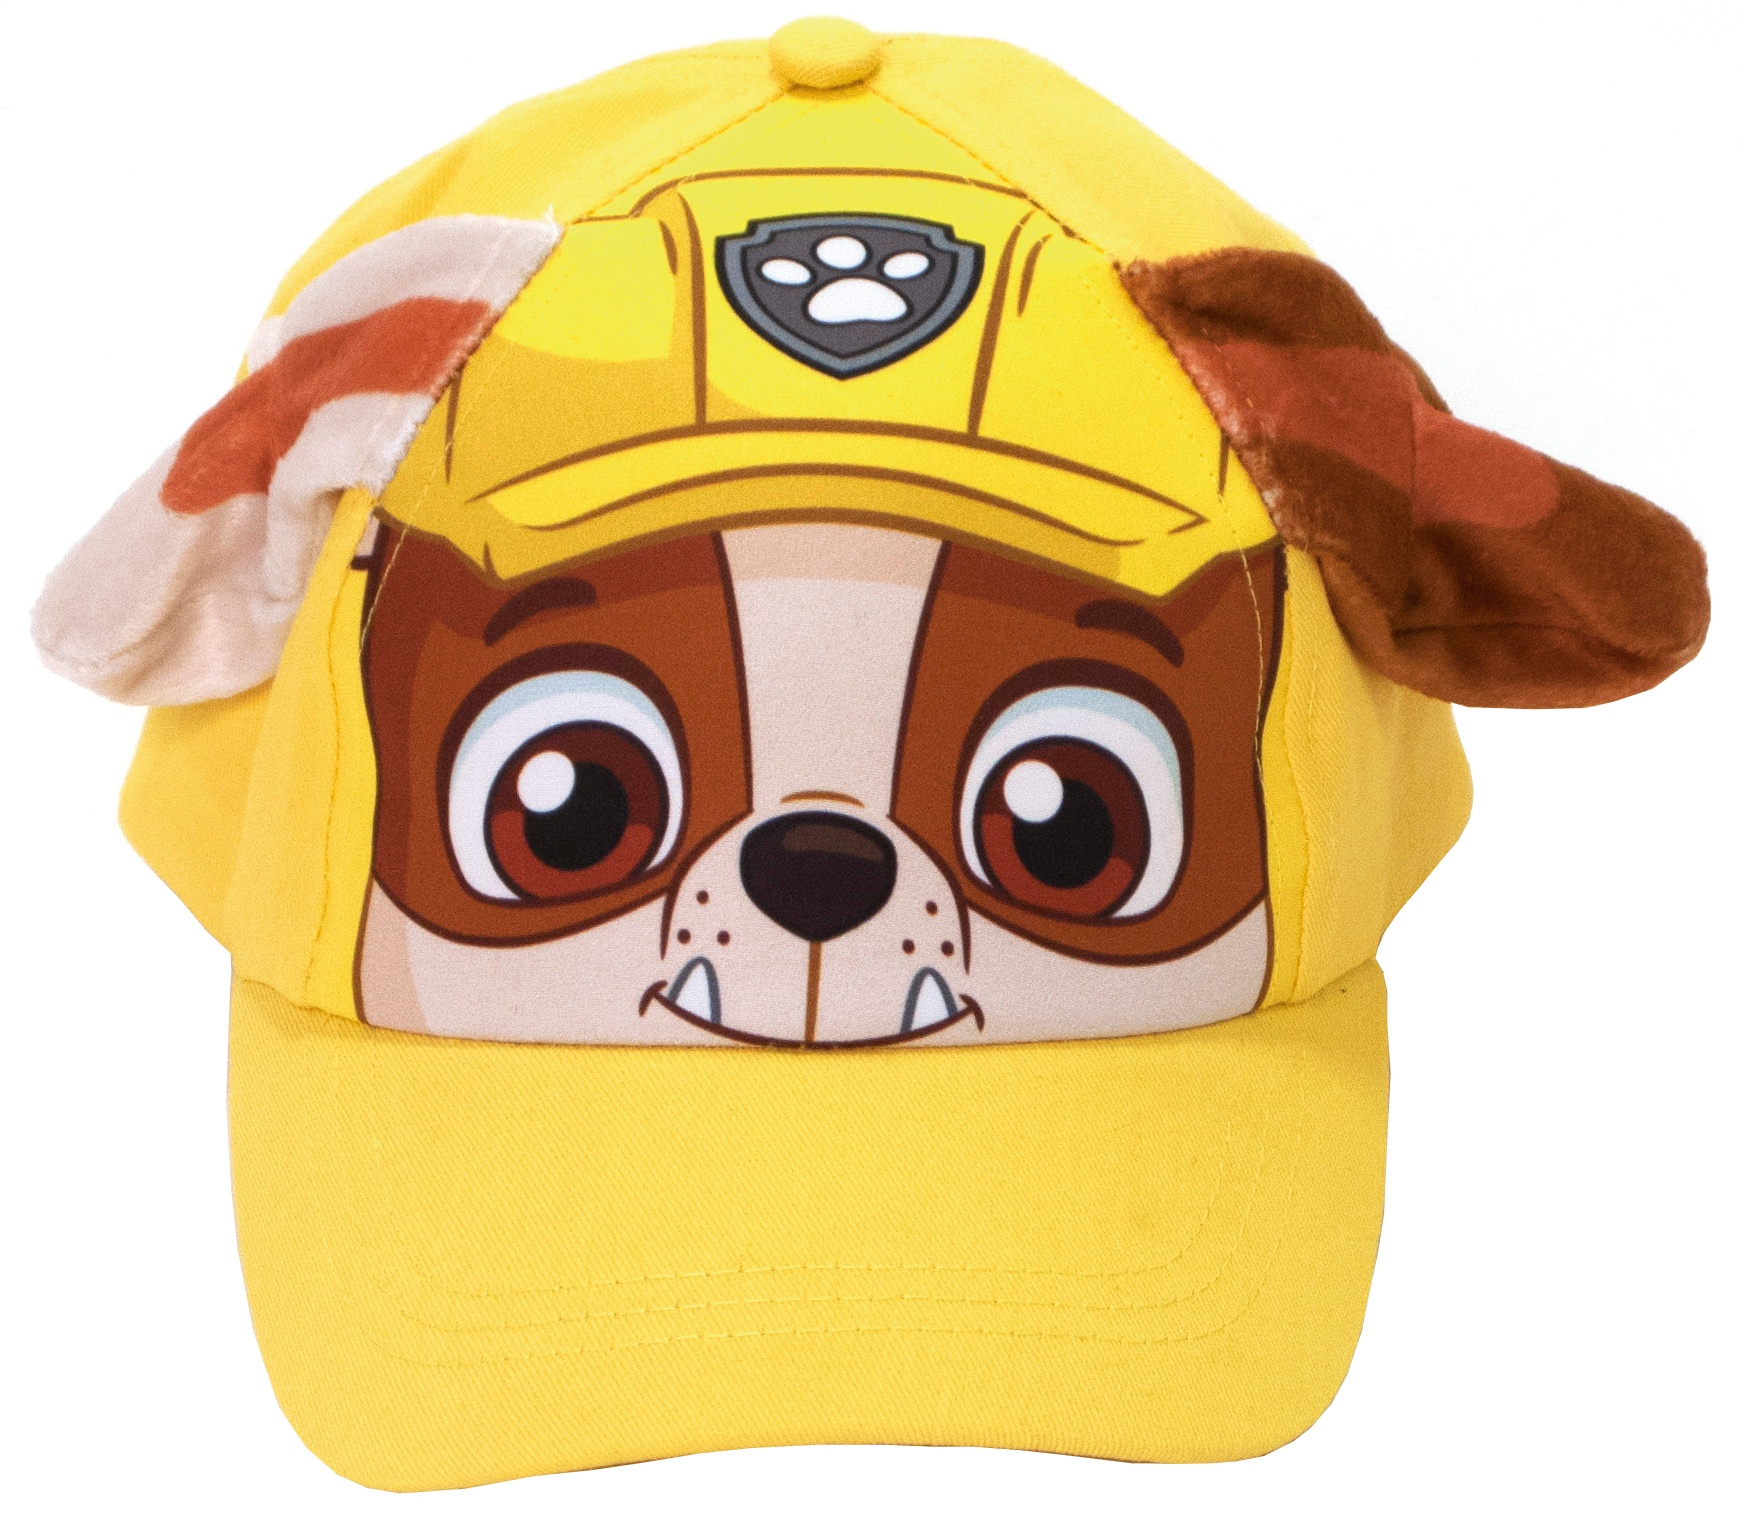 new product 3e6e9 b42ea Product description. Nickelodeon Paw Patrol cap